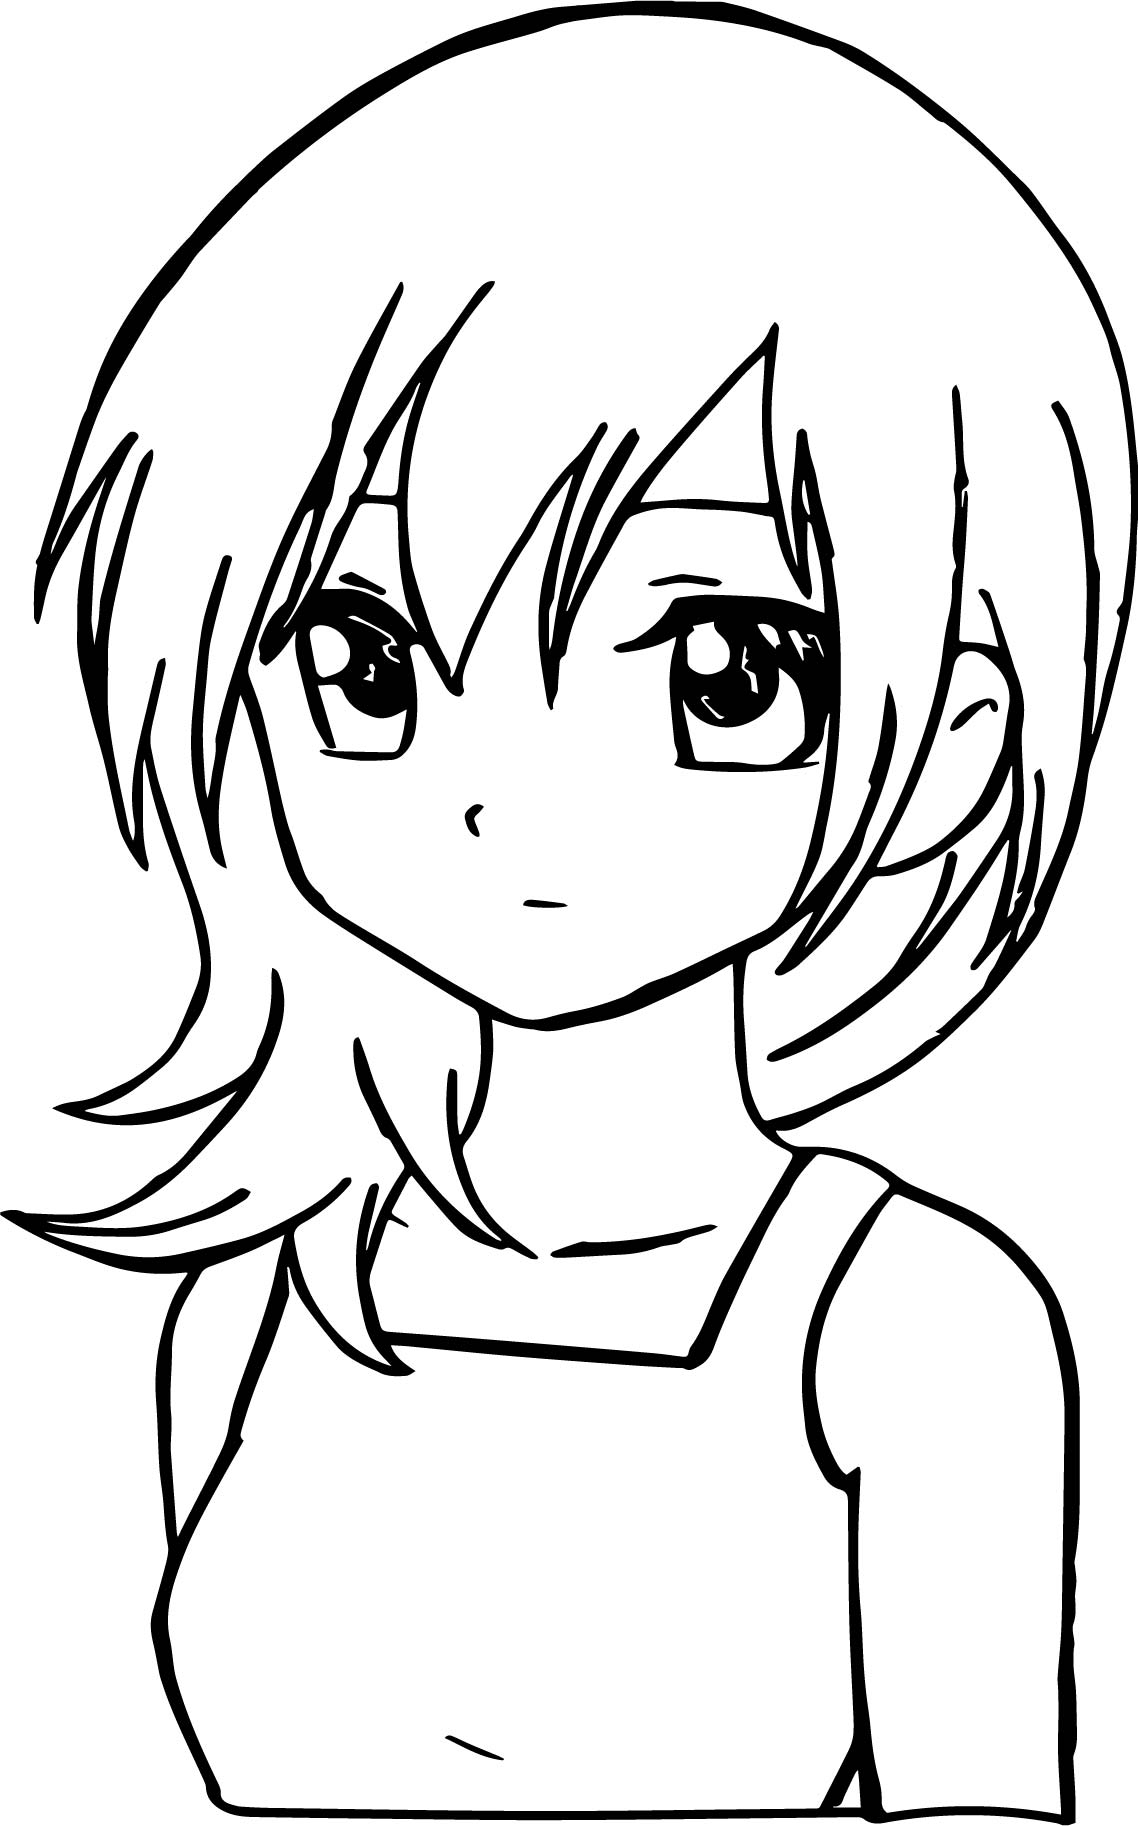 sad coloring pages - manga sad girl coloring page